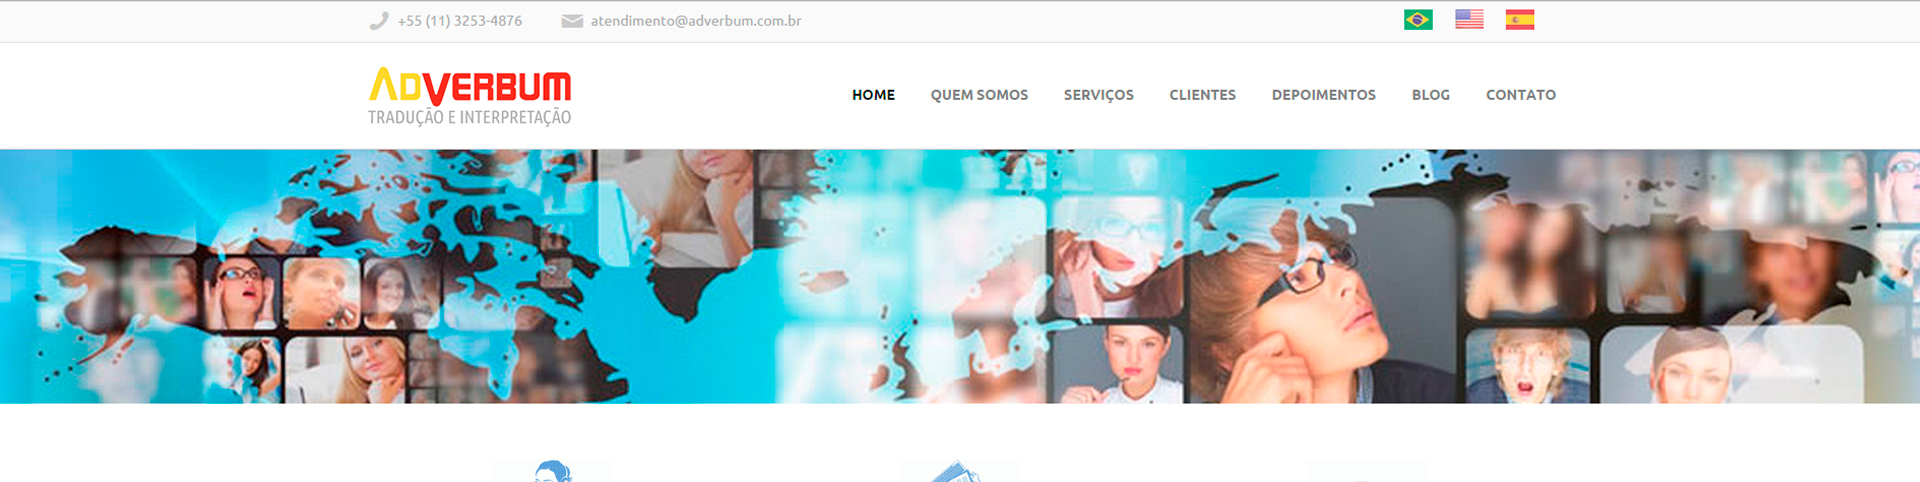 Site Adverbum